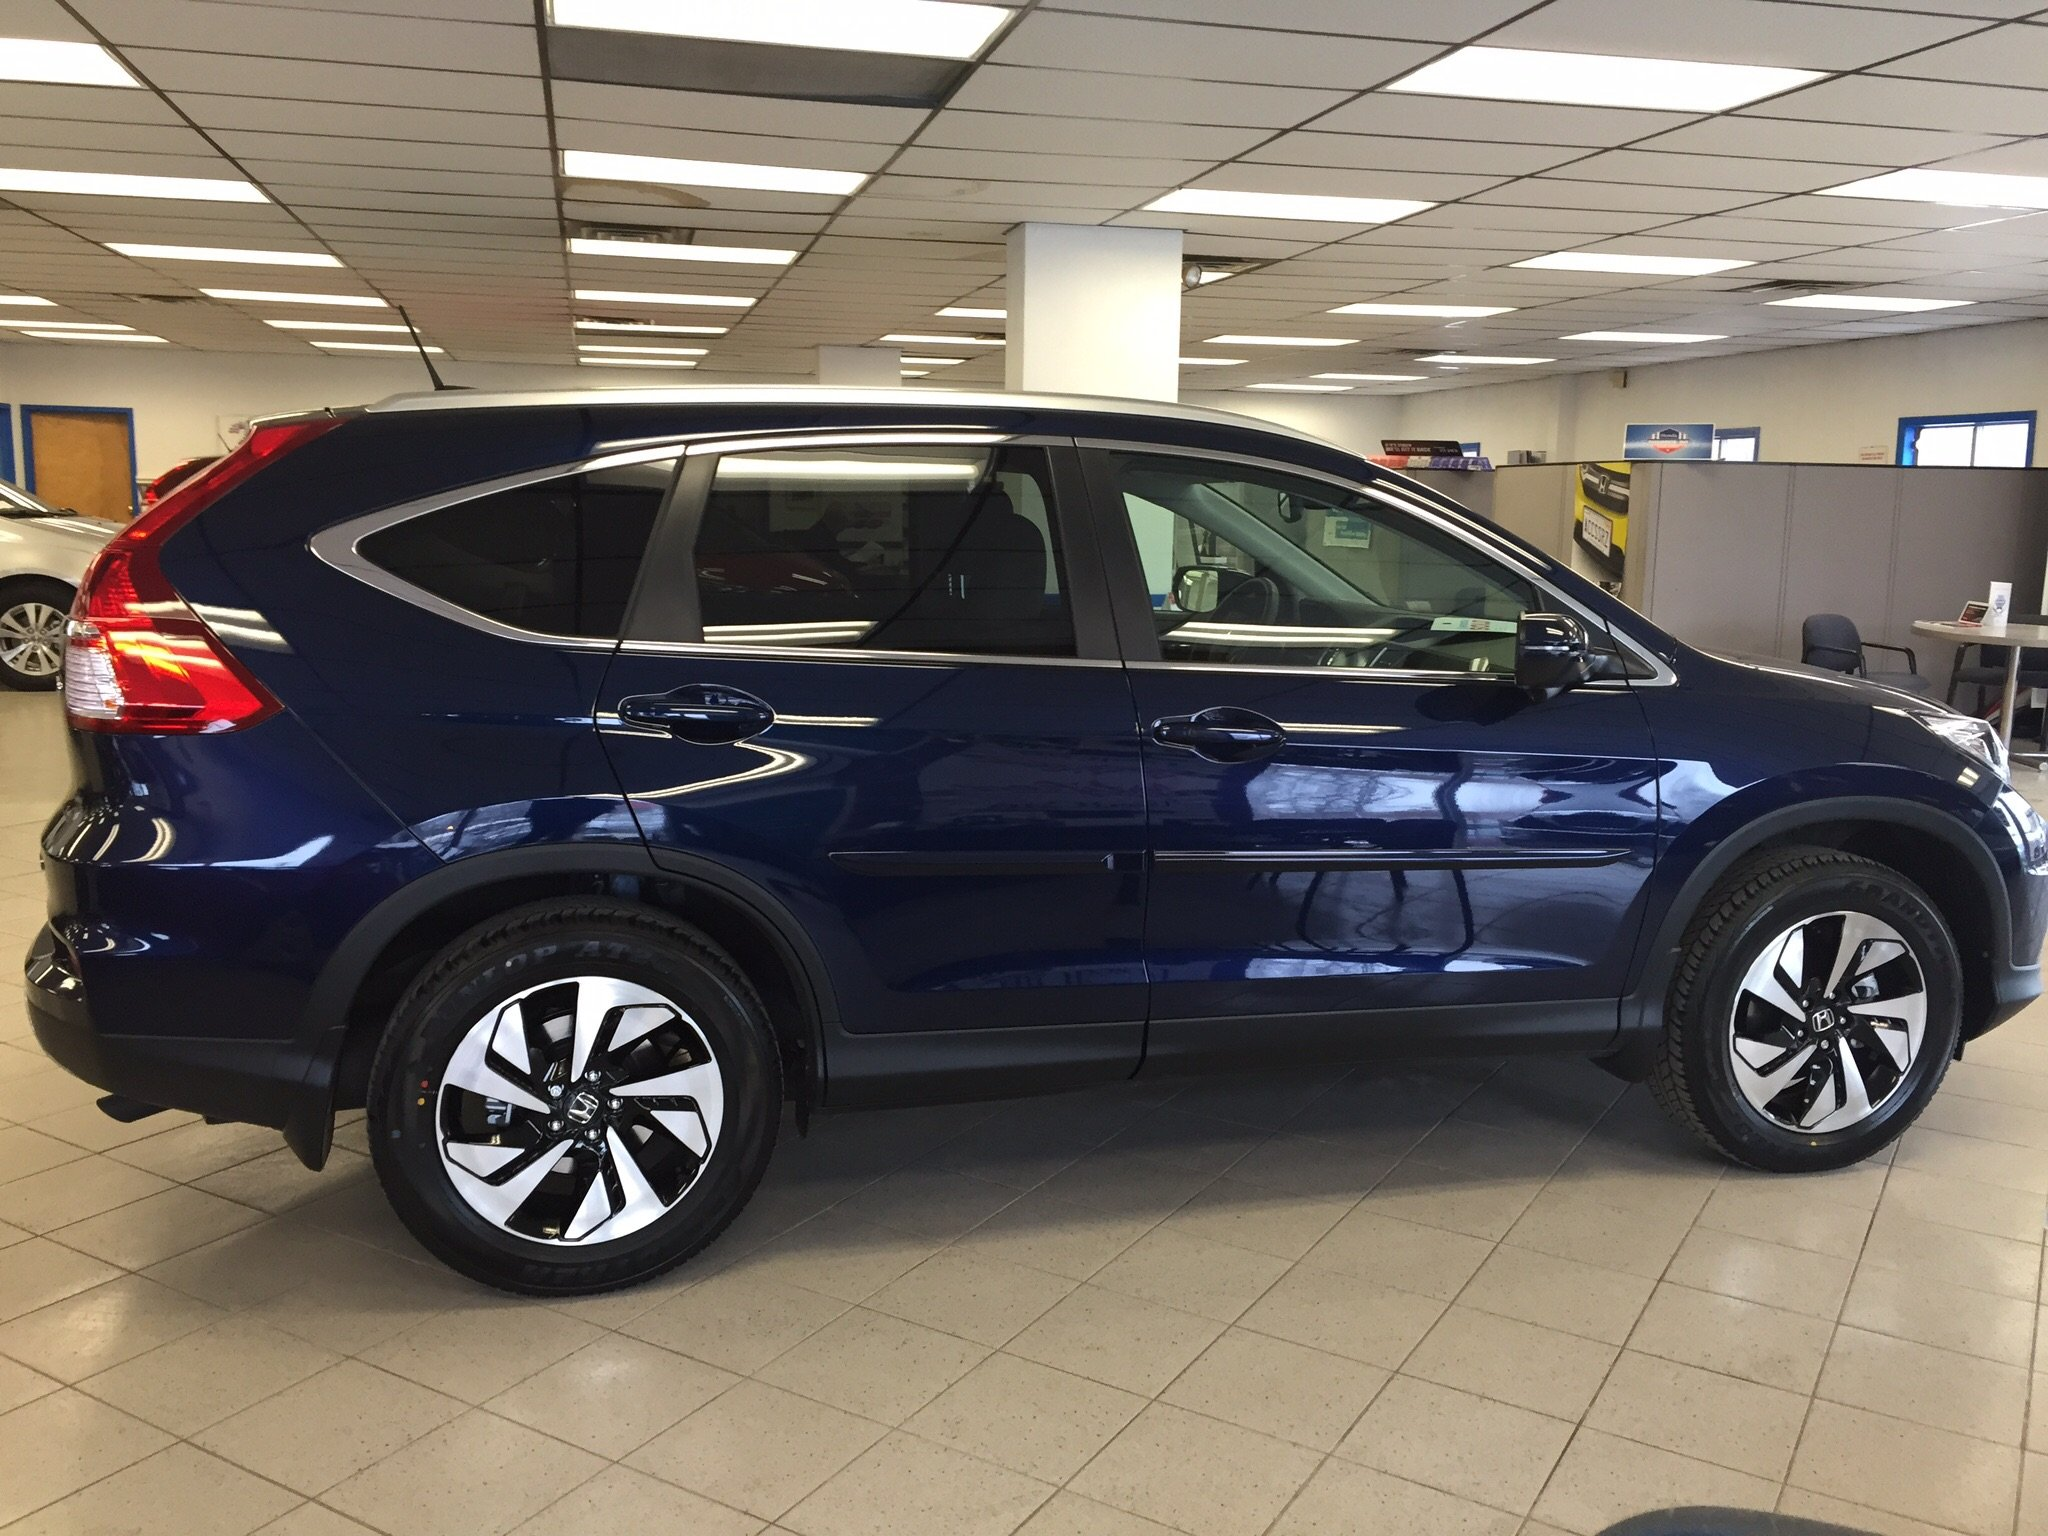 2015 honda cr v prices paid and buying experiences page